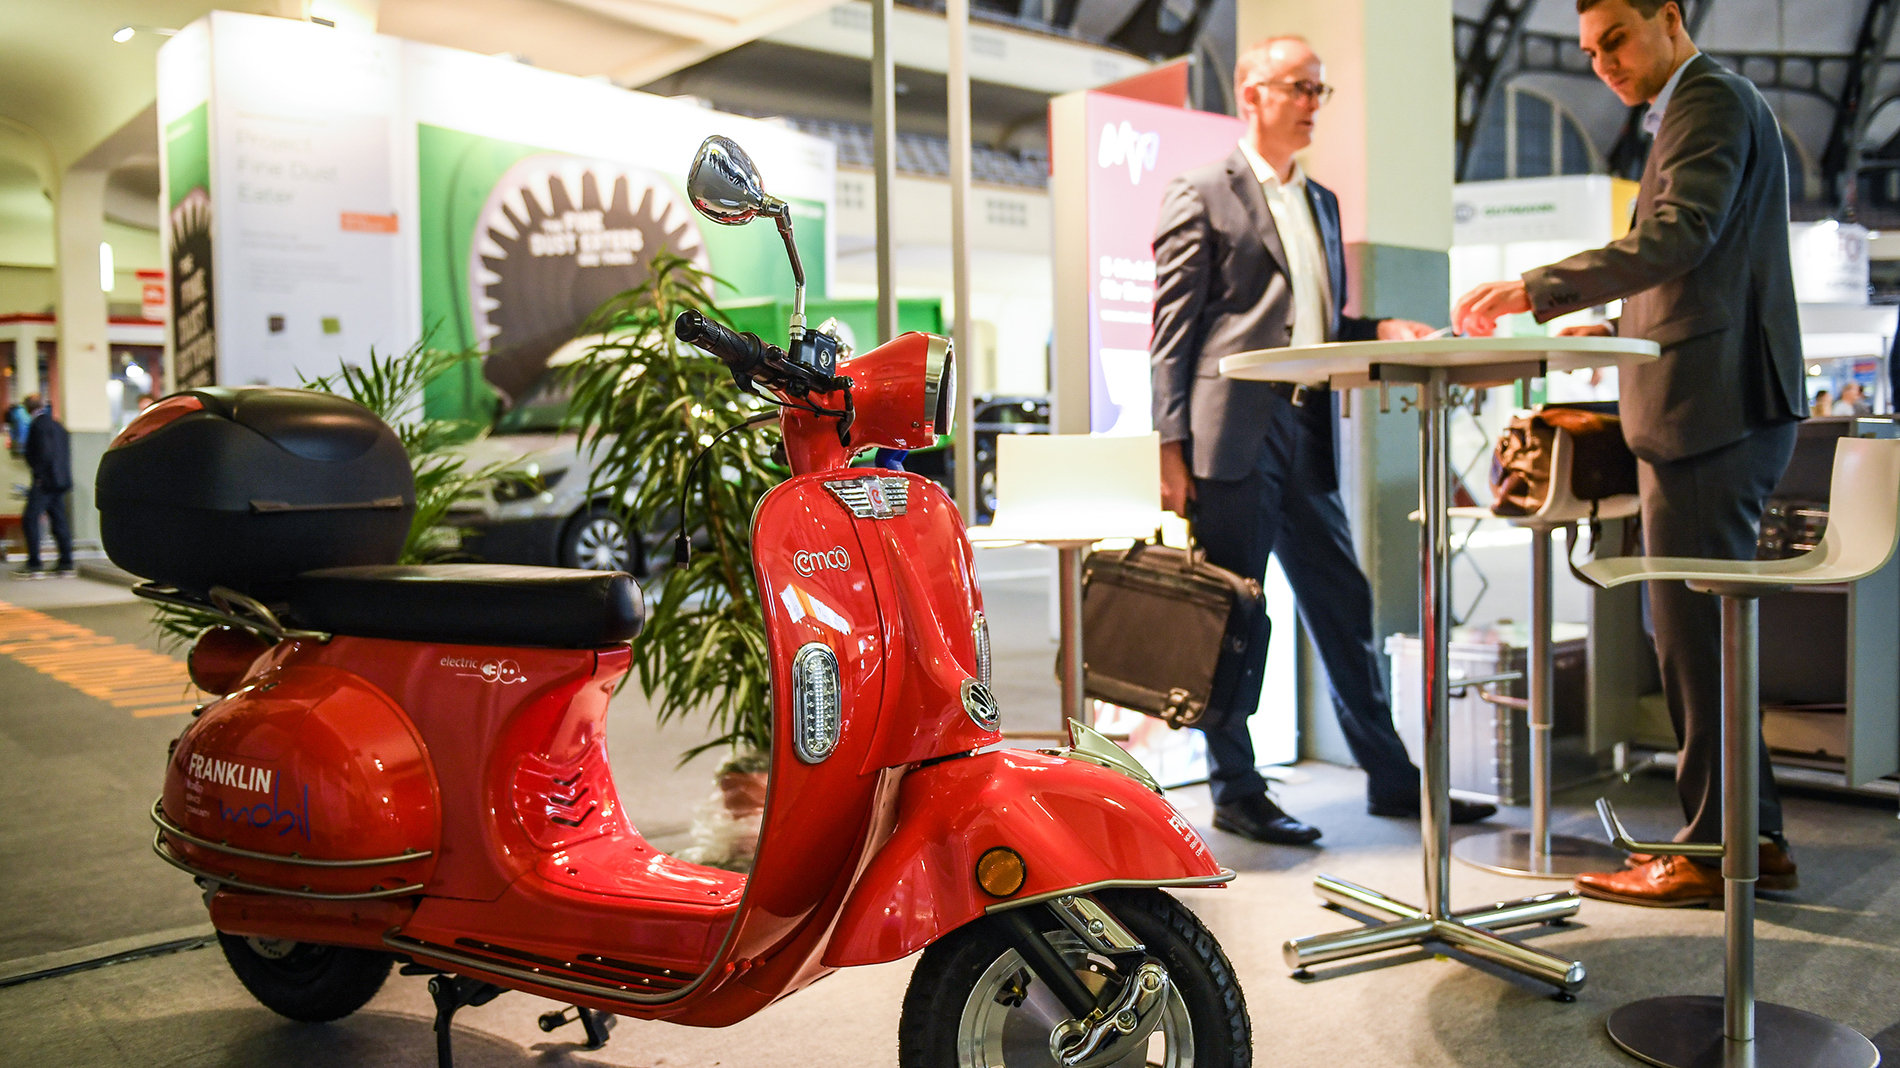 Scooter at Automechanika